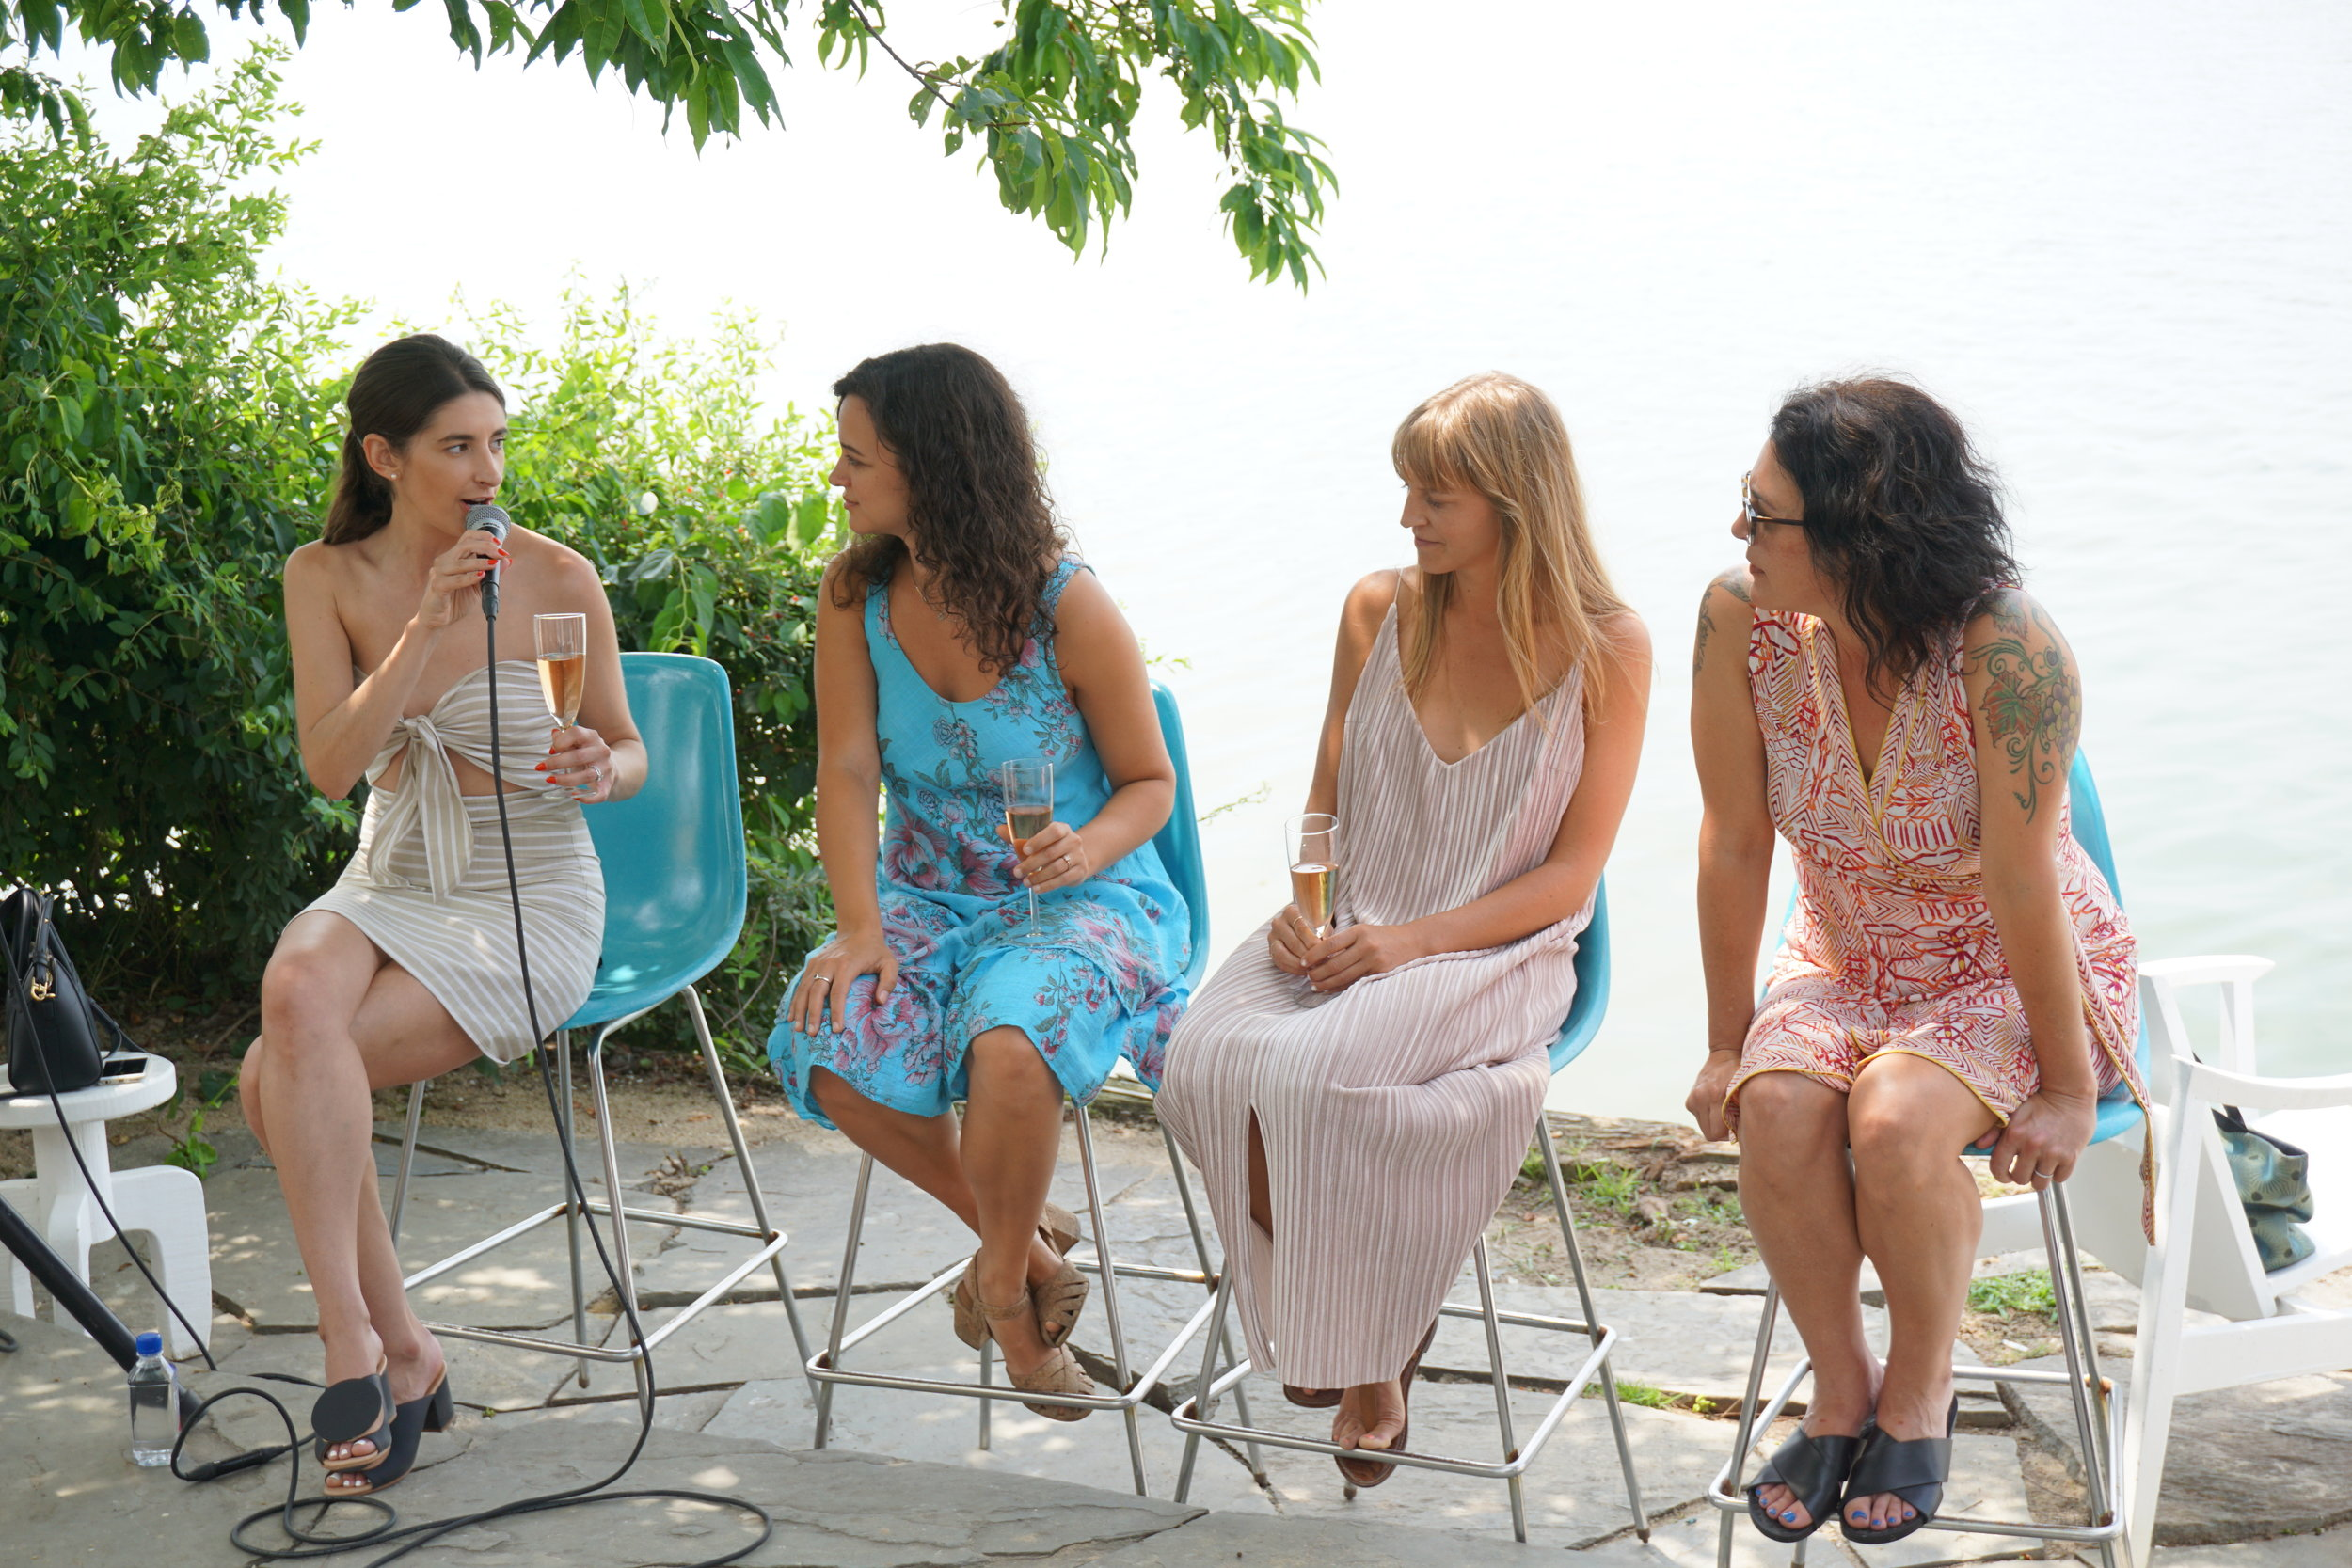 """The Rosé Project 'Women in Wine"""" Panel at The Surf Lodge, moderated by wine writer Marissa A. Ross , along with panelists Kimberly Prokoshyn, Ashleigh Parsons, Amy Atwood and Kimberly Prokoshyn. Photo: Jake Greenblatt."""